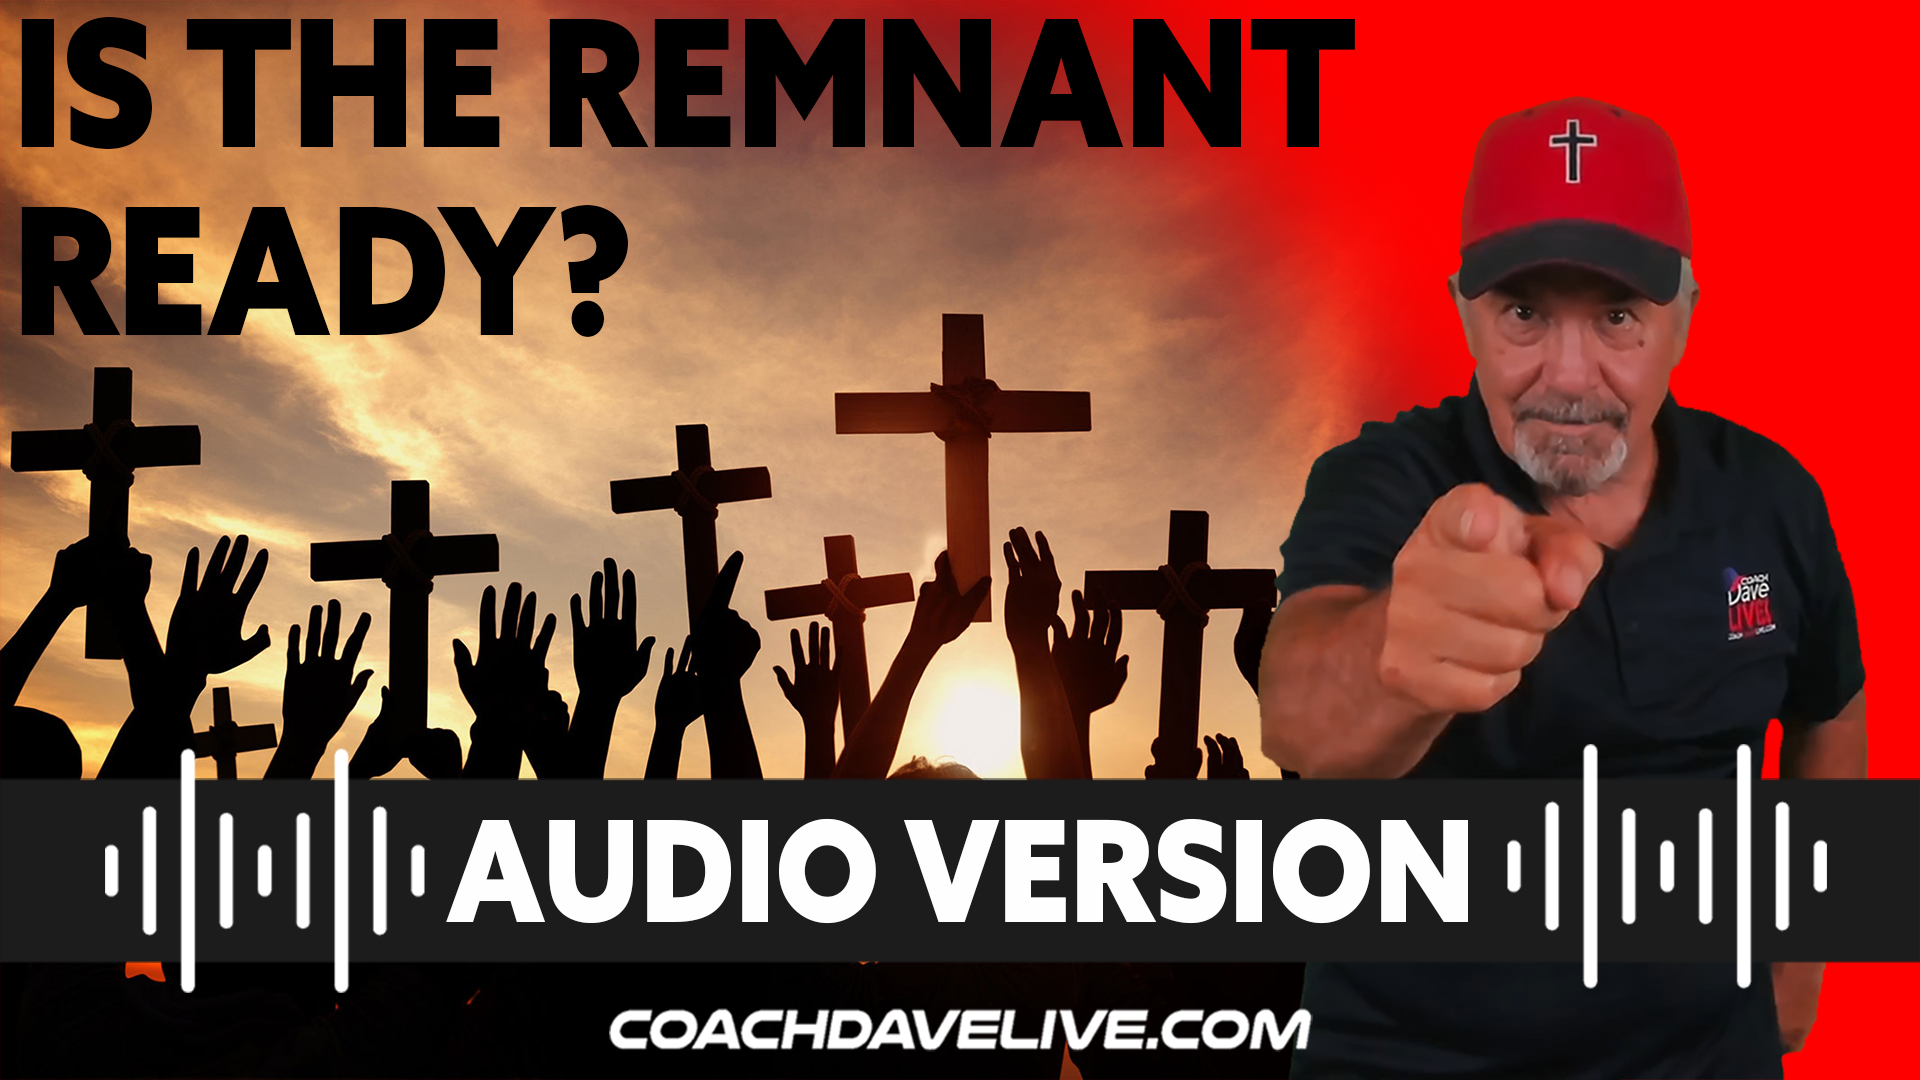 Coach Dave LIVE | 9-1-2021 | IS THE REMNANT READY? - AUDIO ONLY